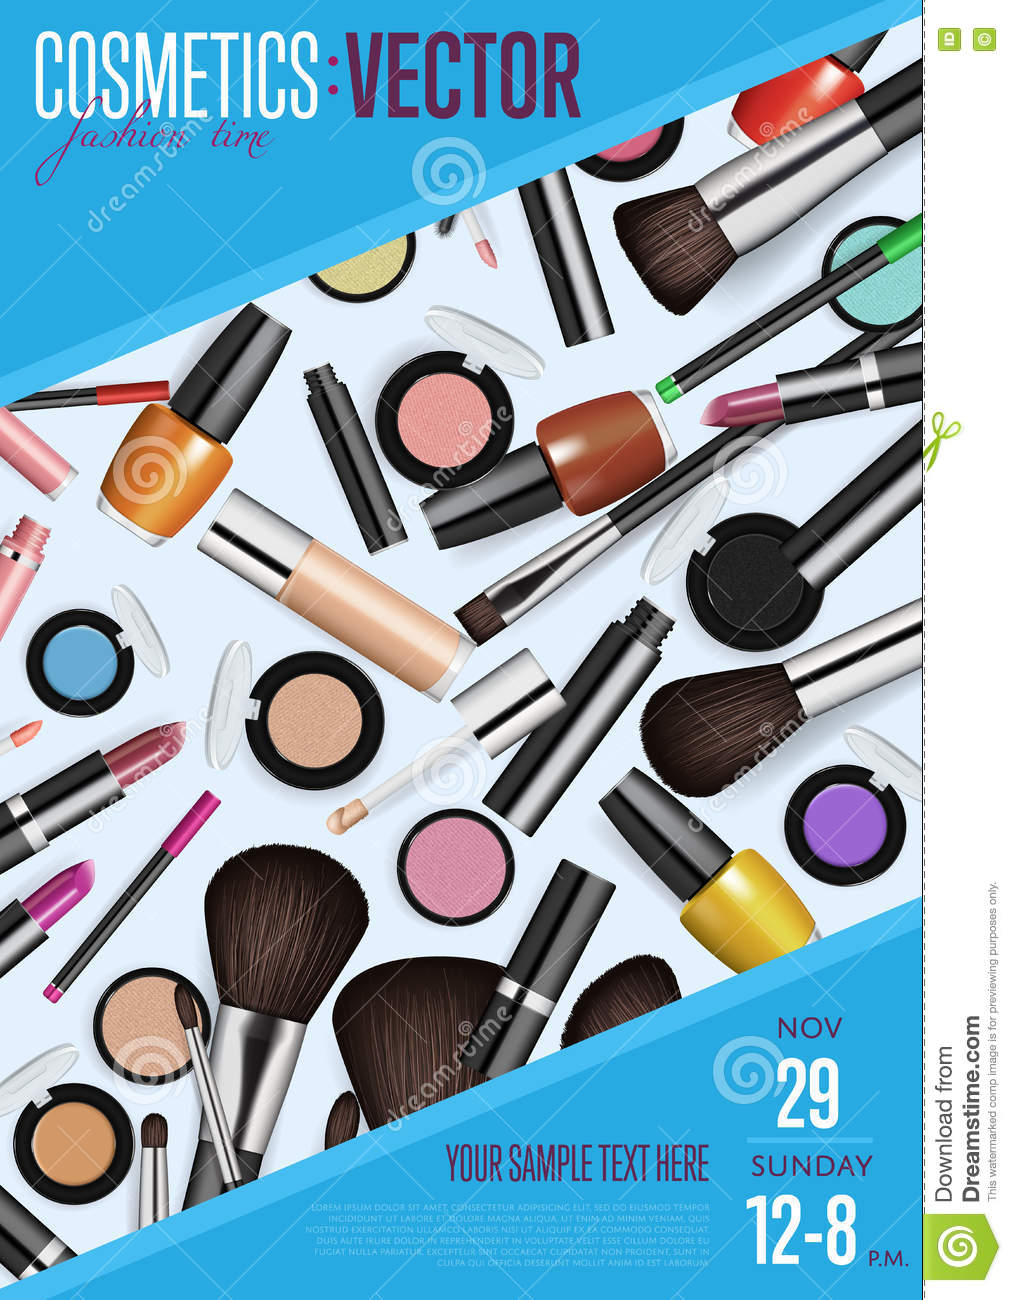 Cosmetics Vector Promo Poster With Date And Time Stock